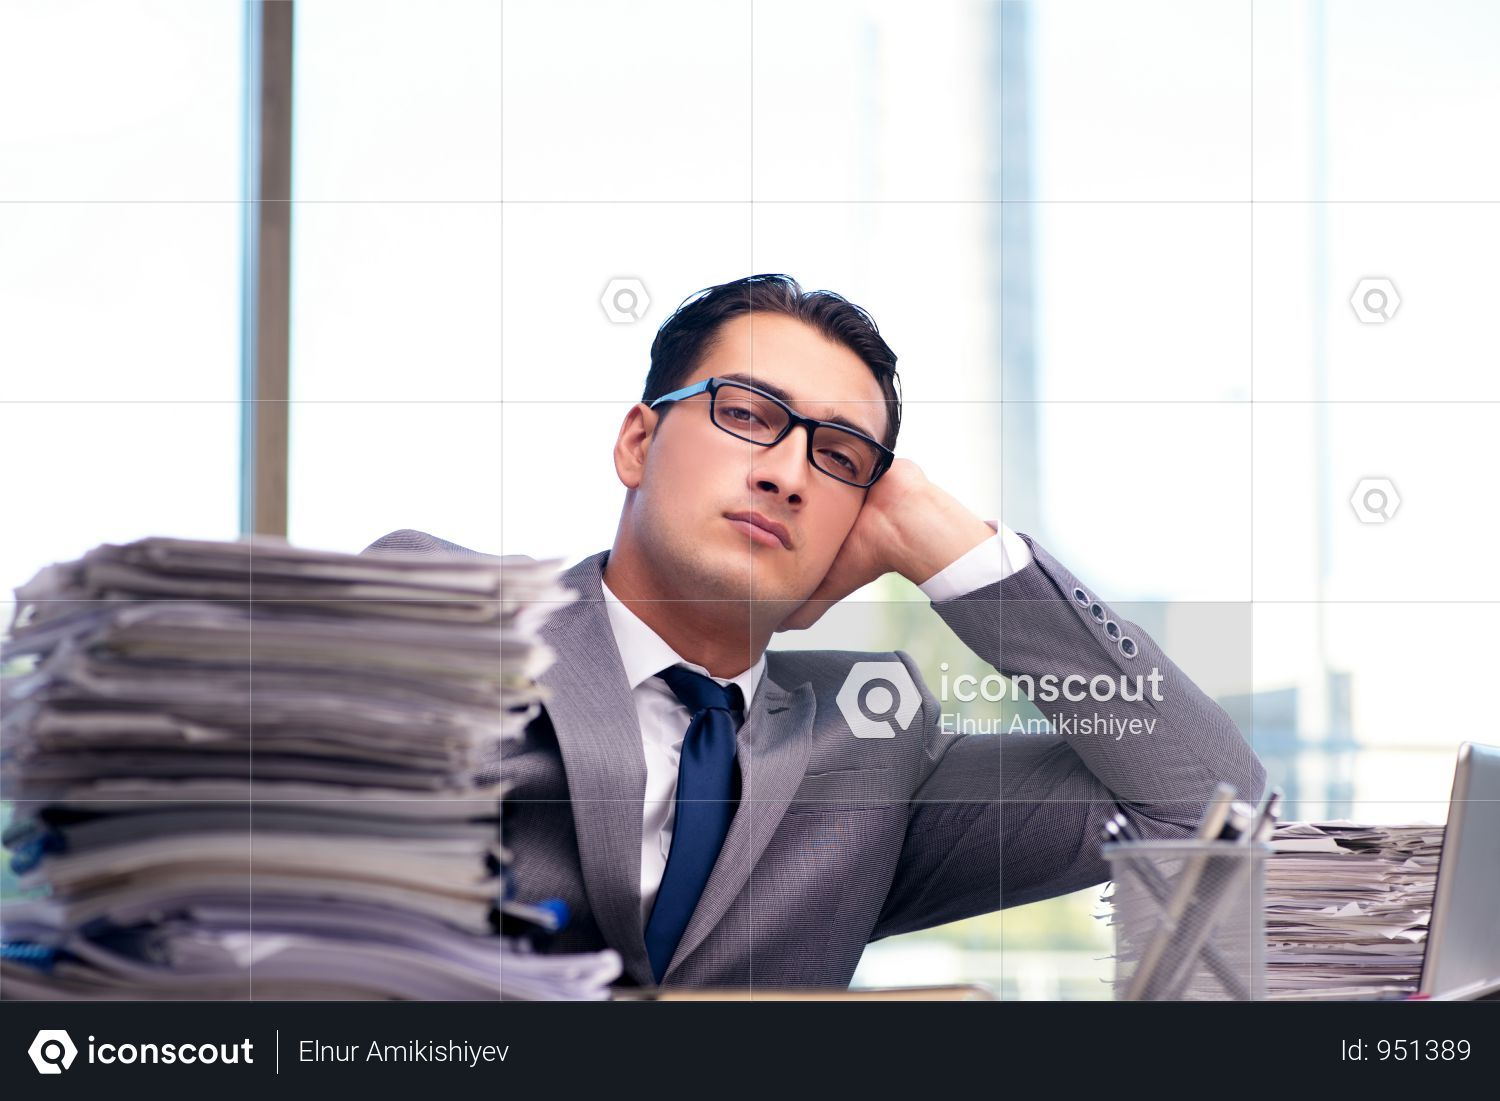 Premium Busy Angry Businessman With Heaps Of Paper Photo Download In Png Jpg Format Business Man Photo Life Photo